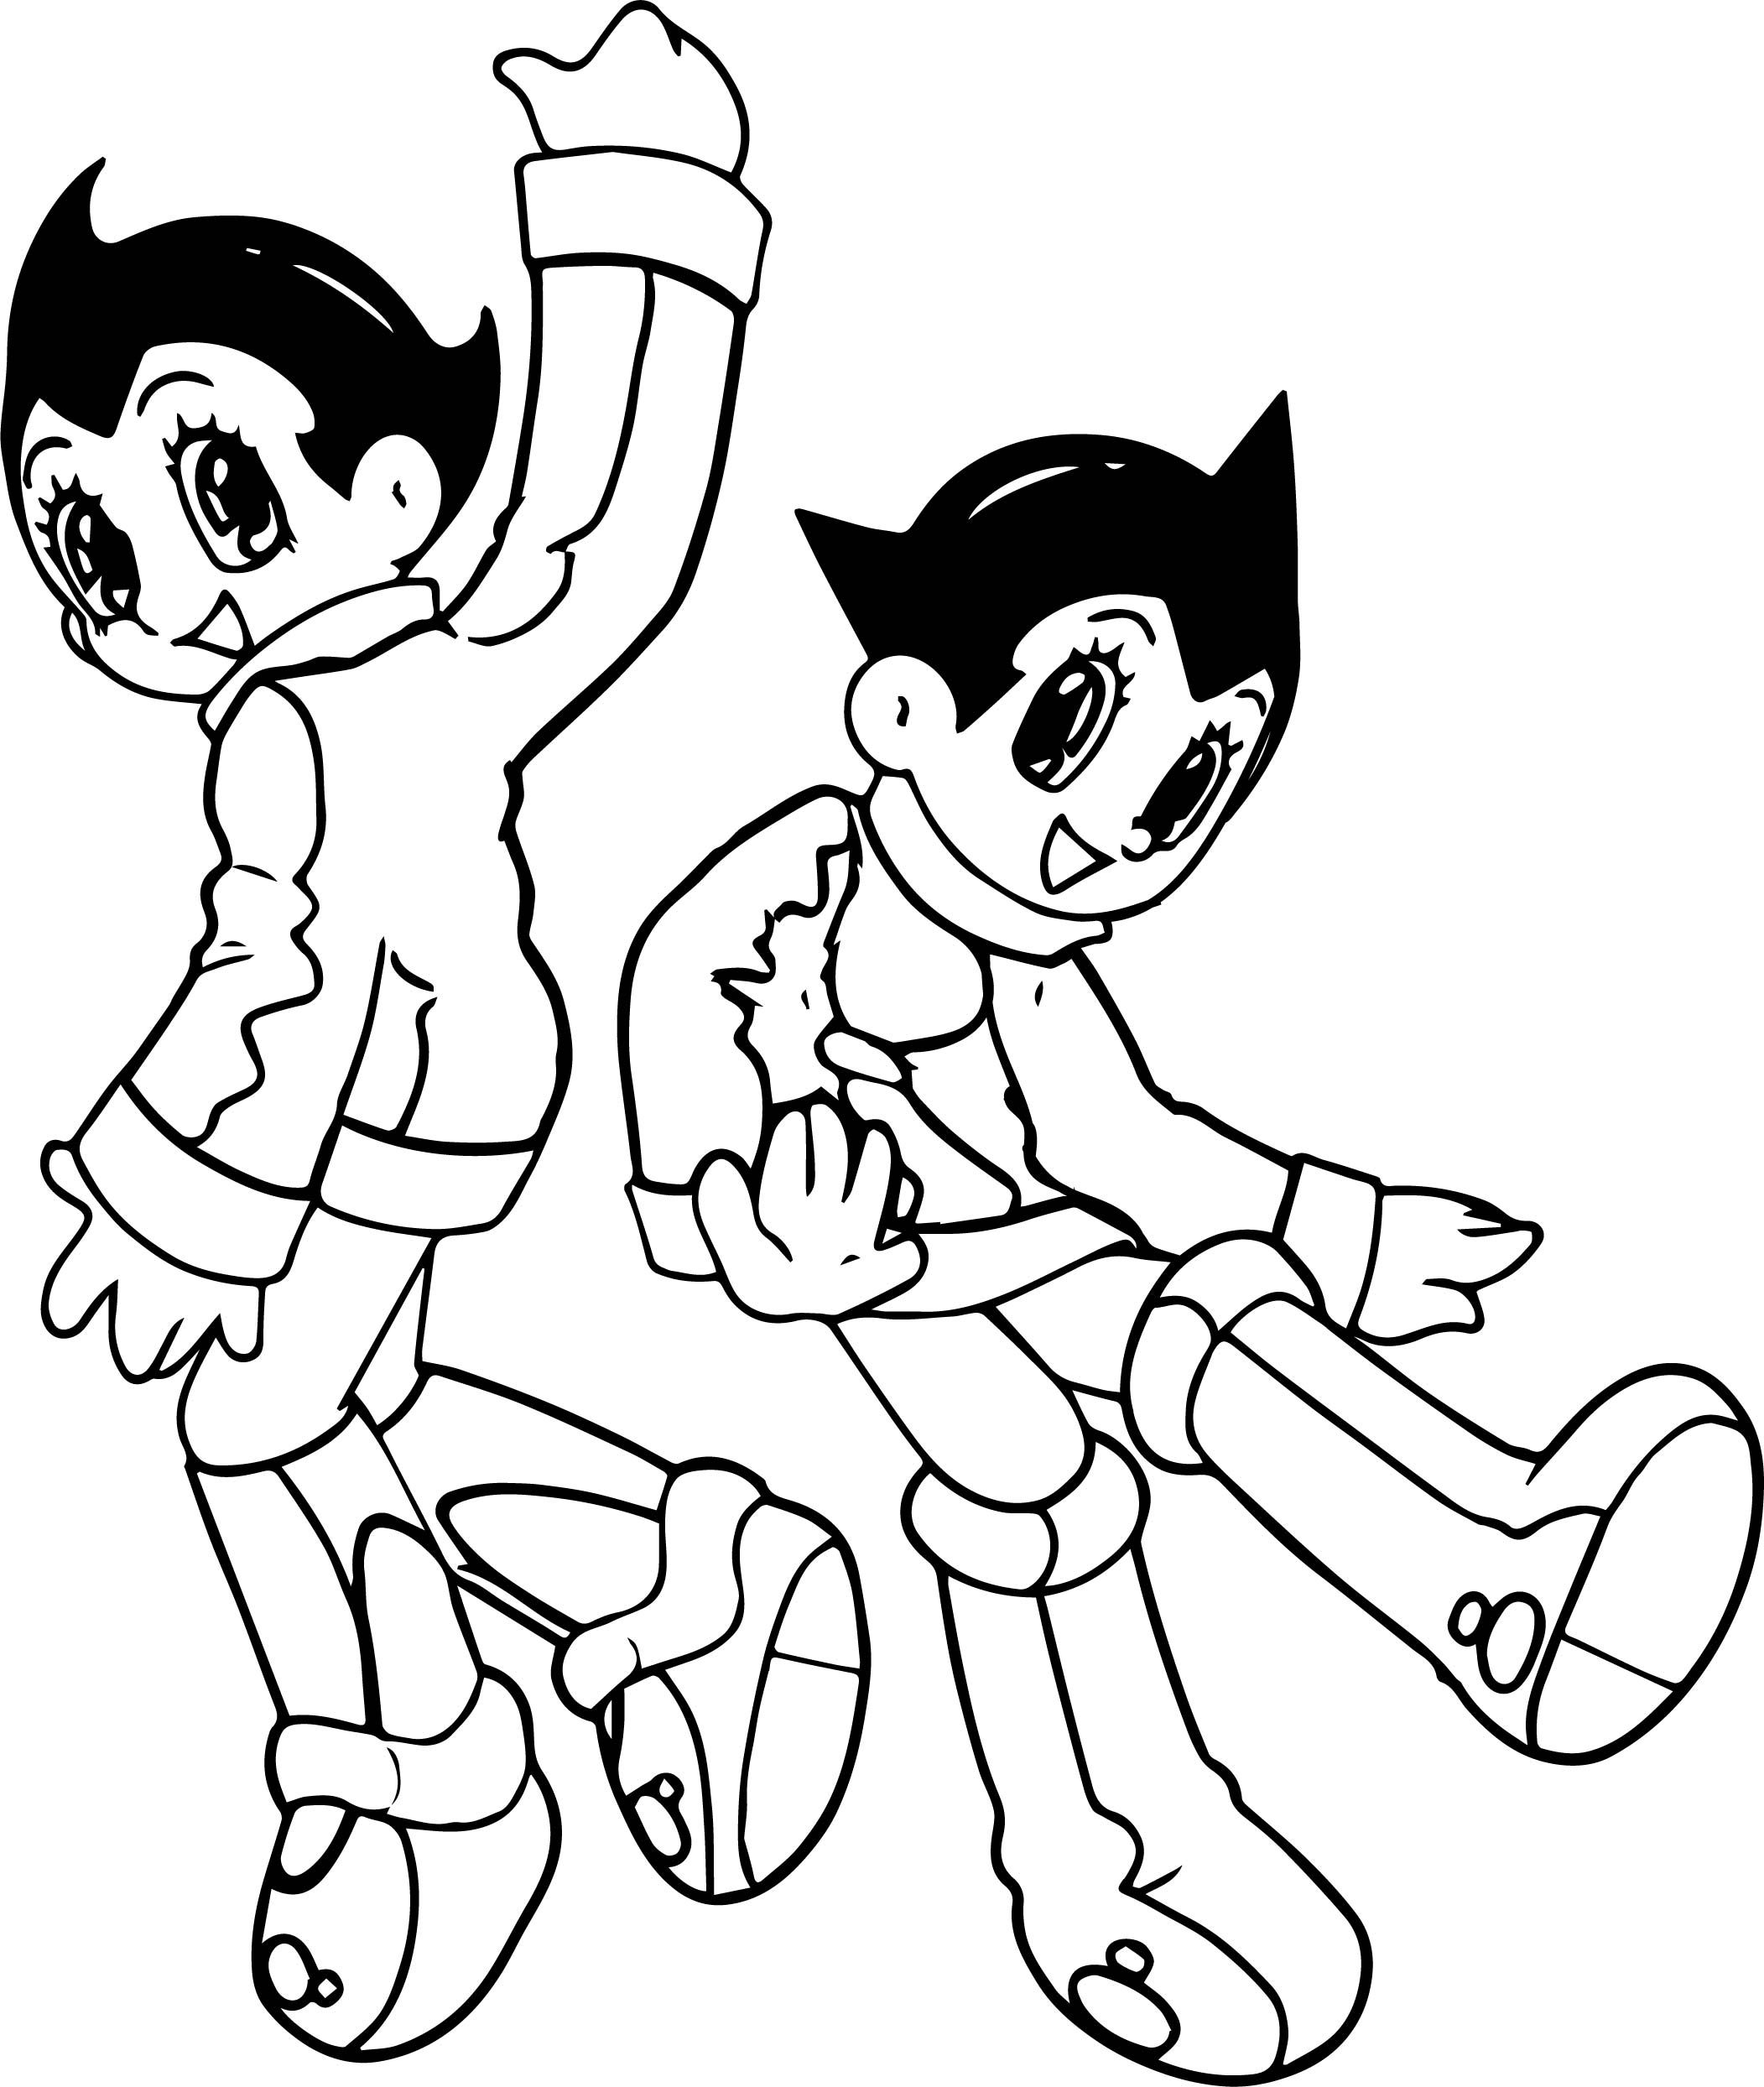 Astro Boy Good Coloring Page